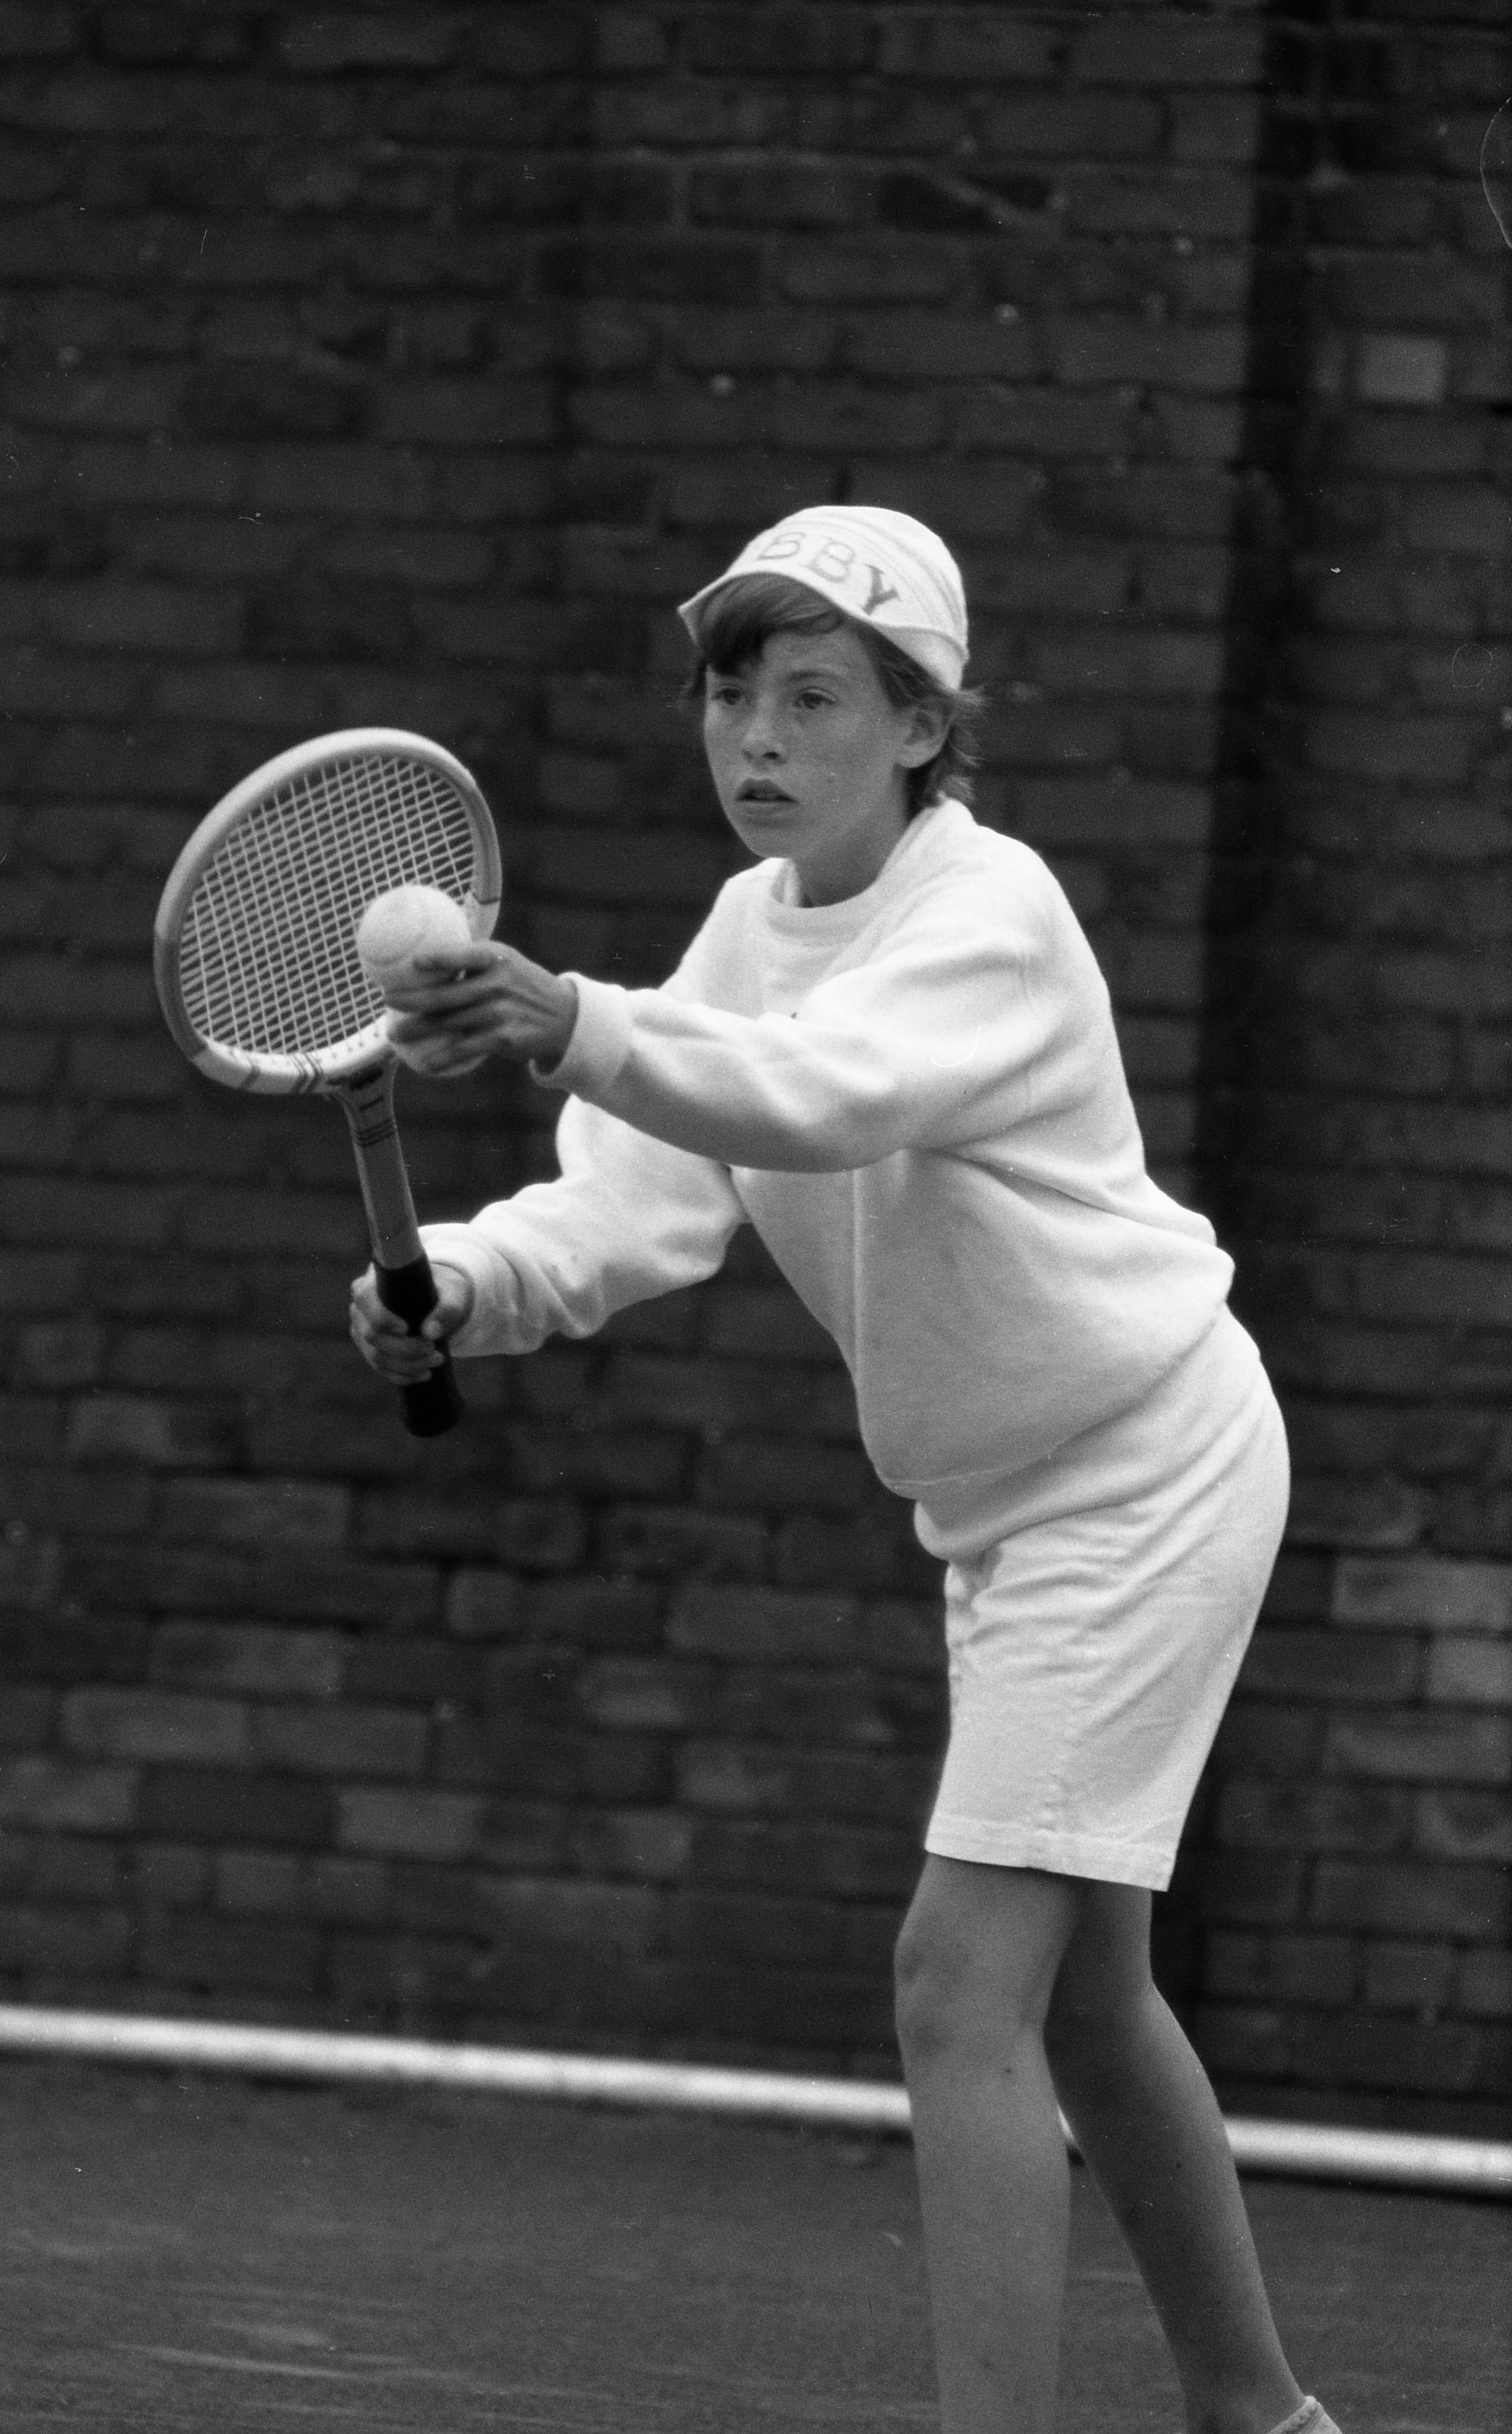 Barb Dixon Playing Tennis In The City Tennis Championships, June 1959 image